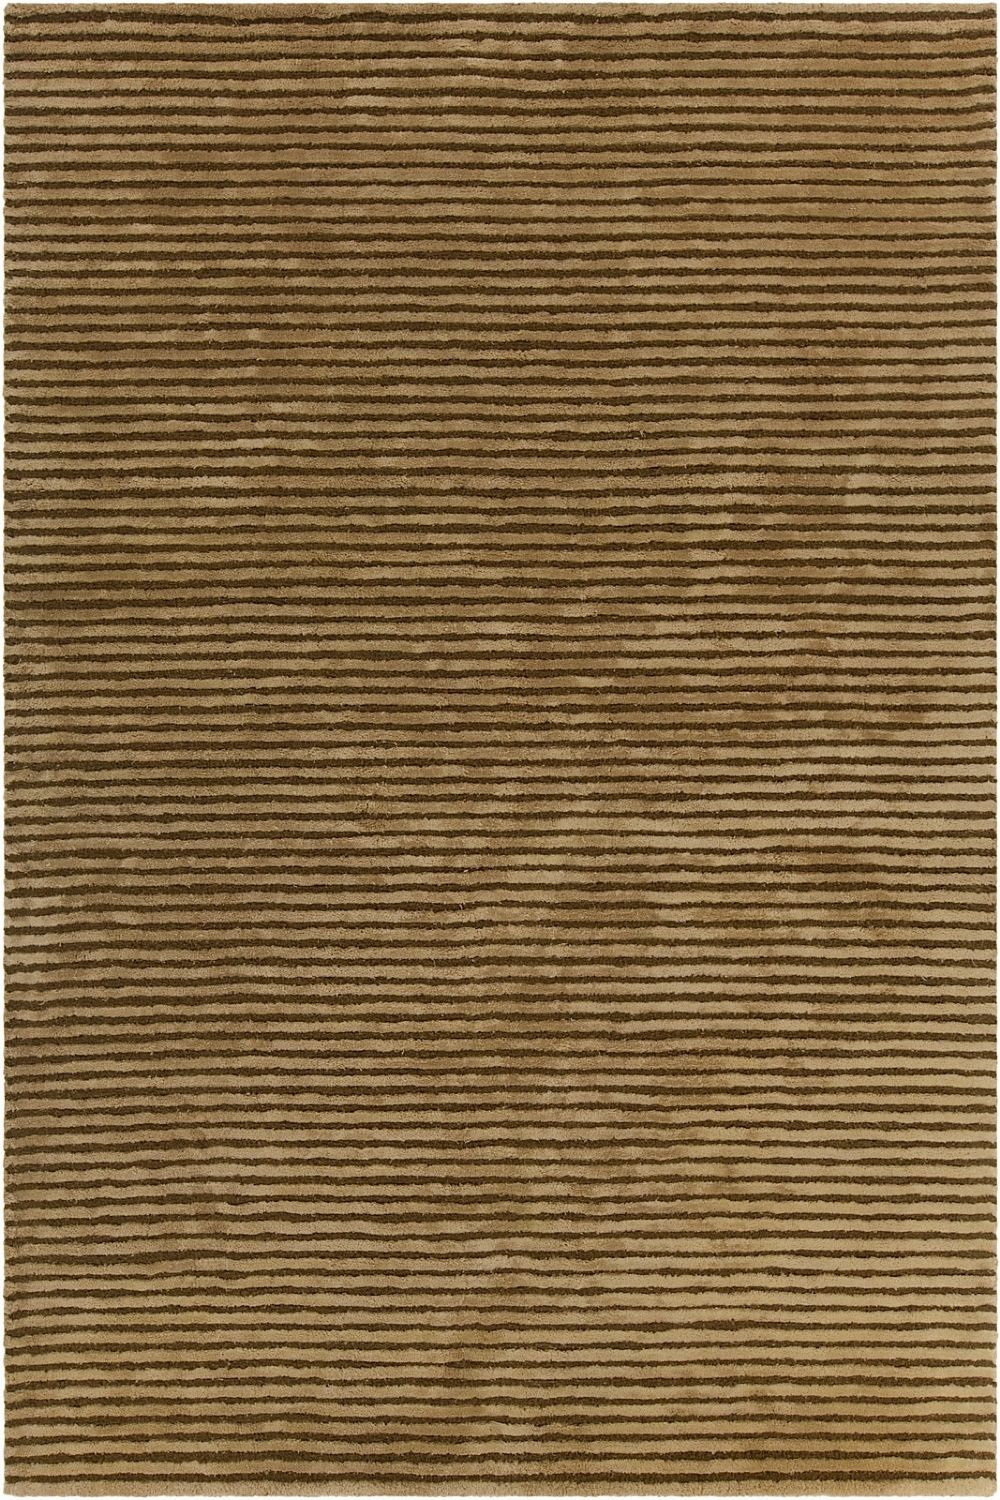 chandra angelo solid/striped area rug collection